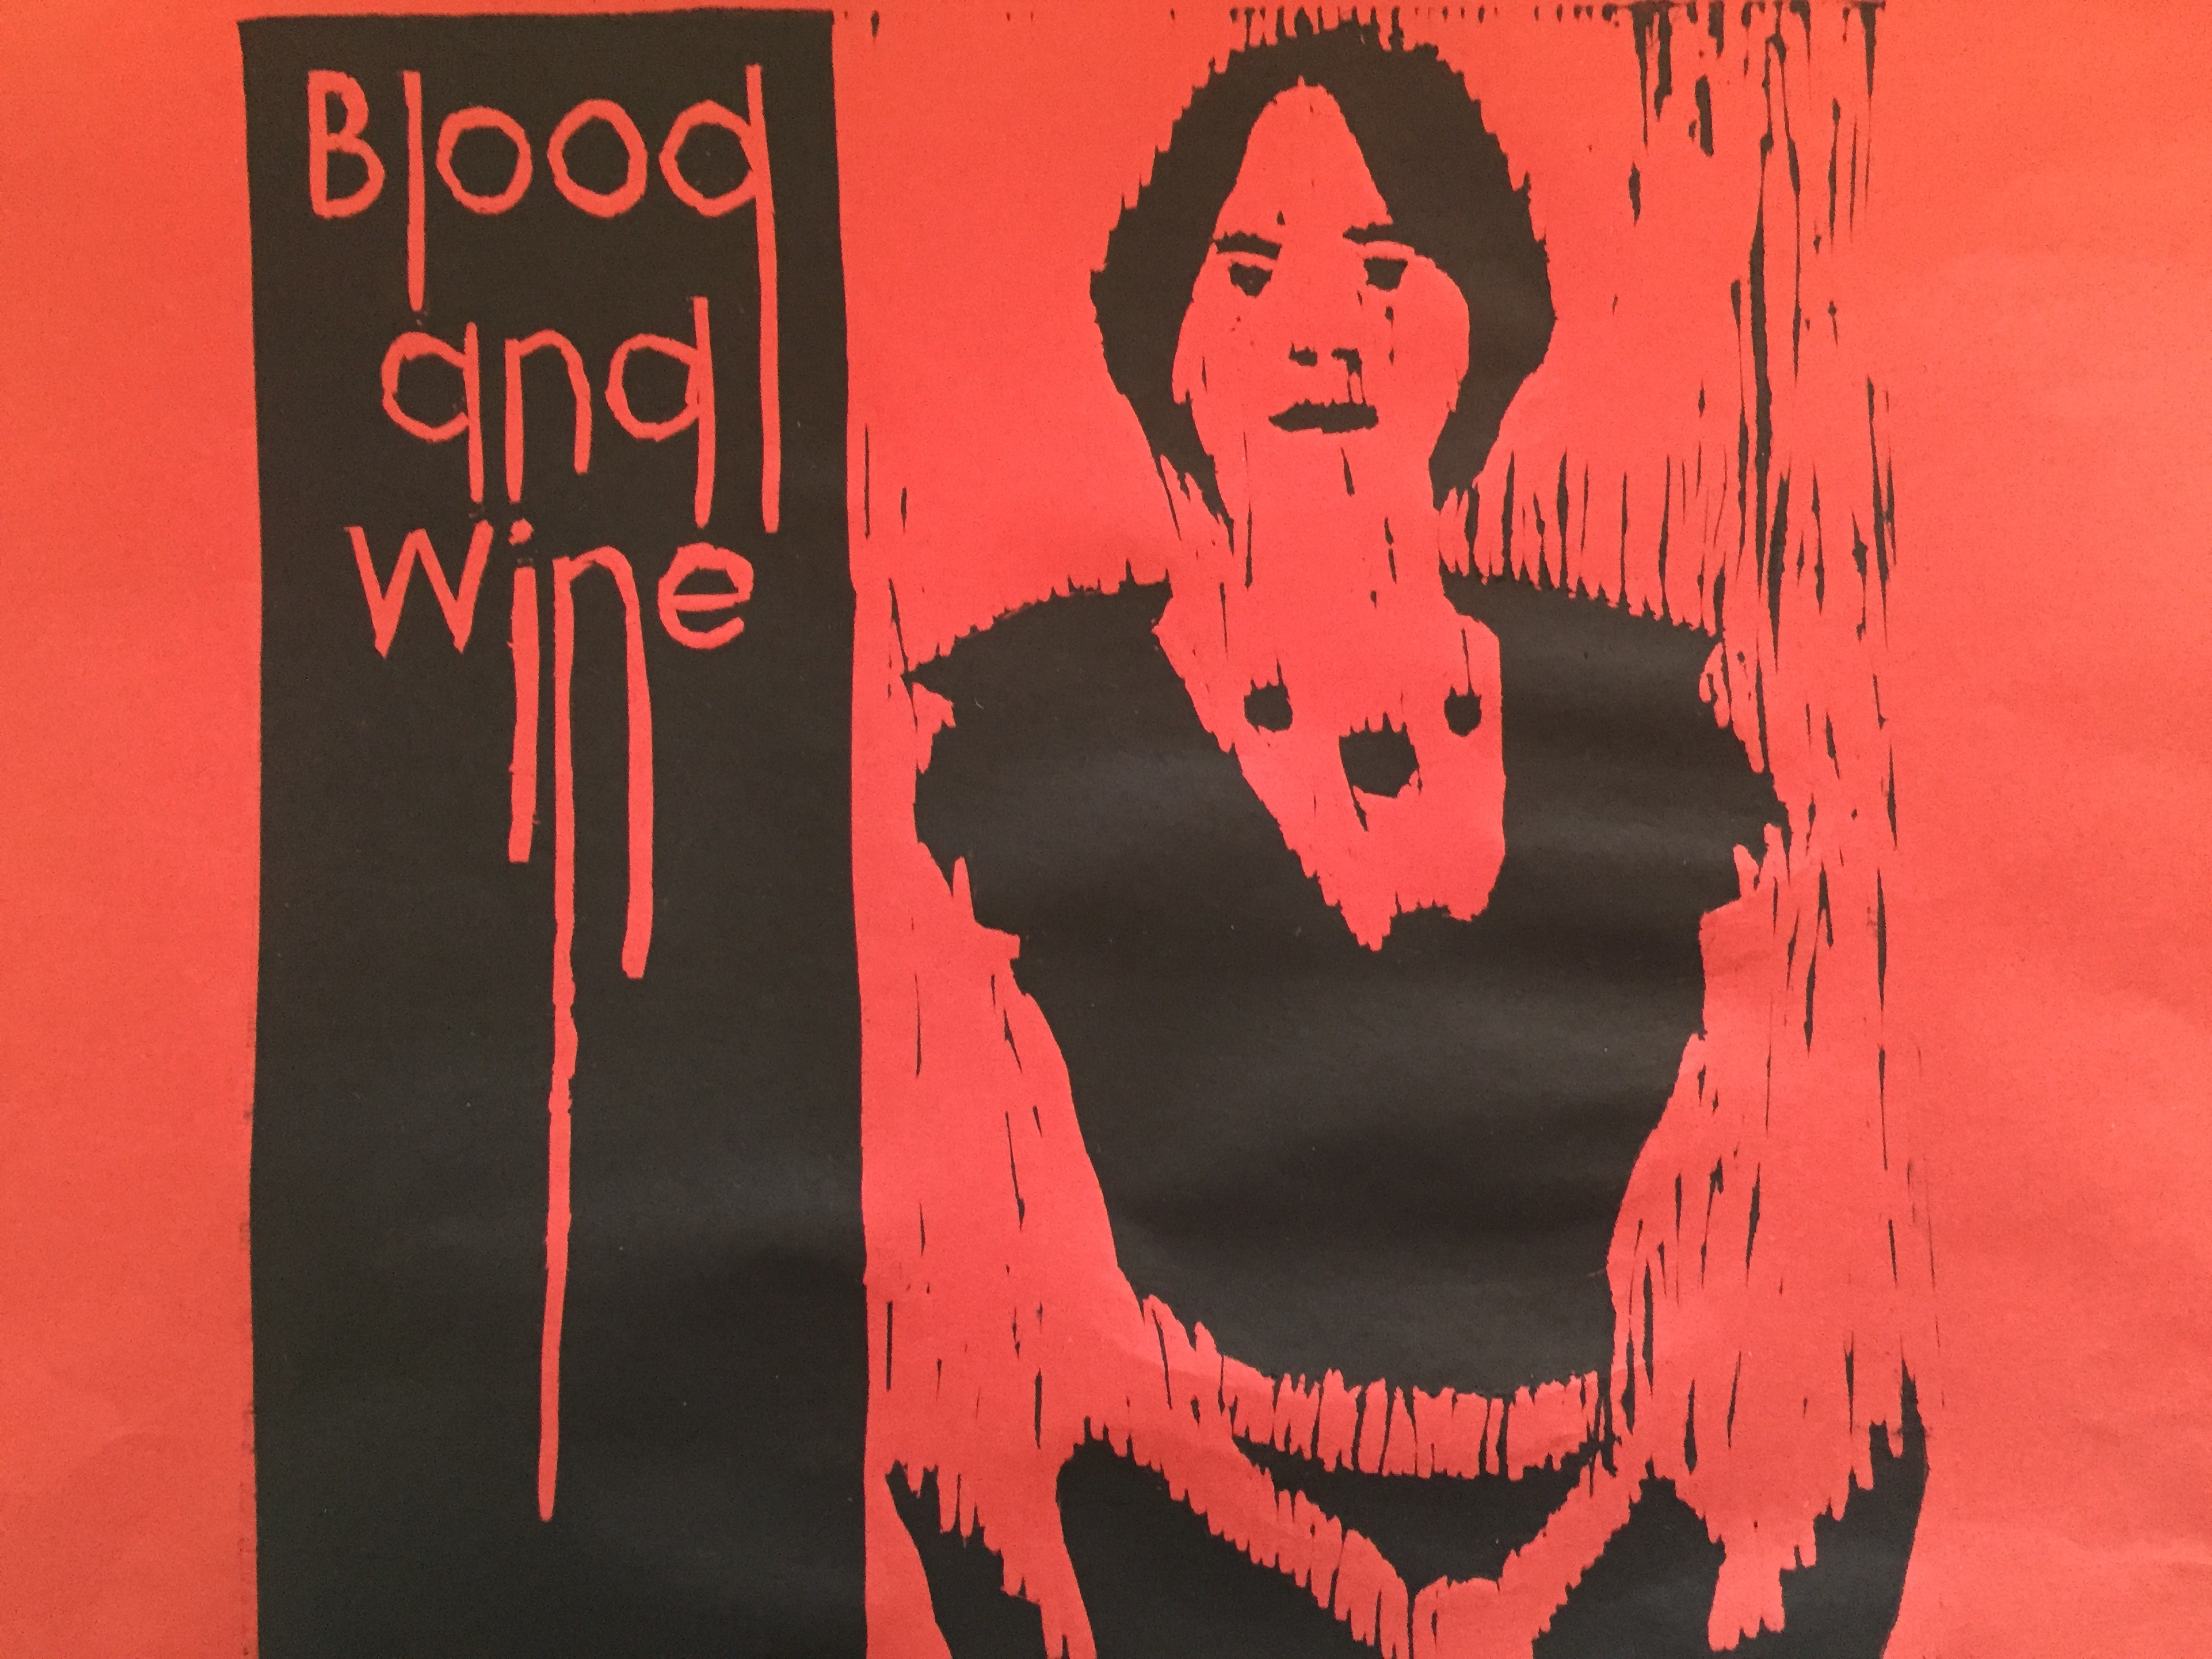 Blood and Wine (linóleo)